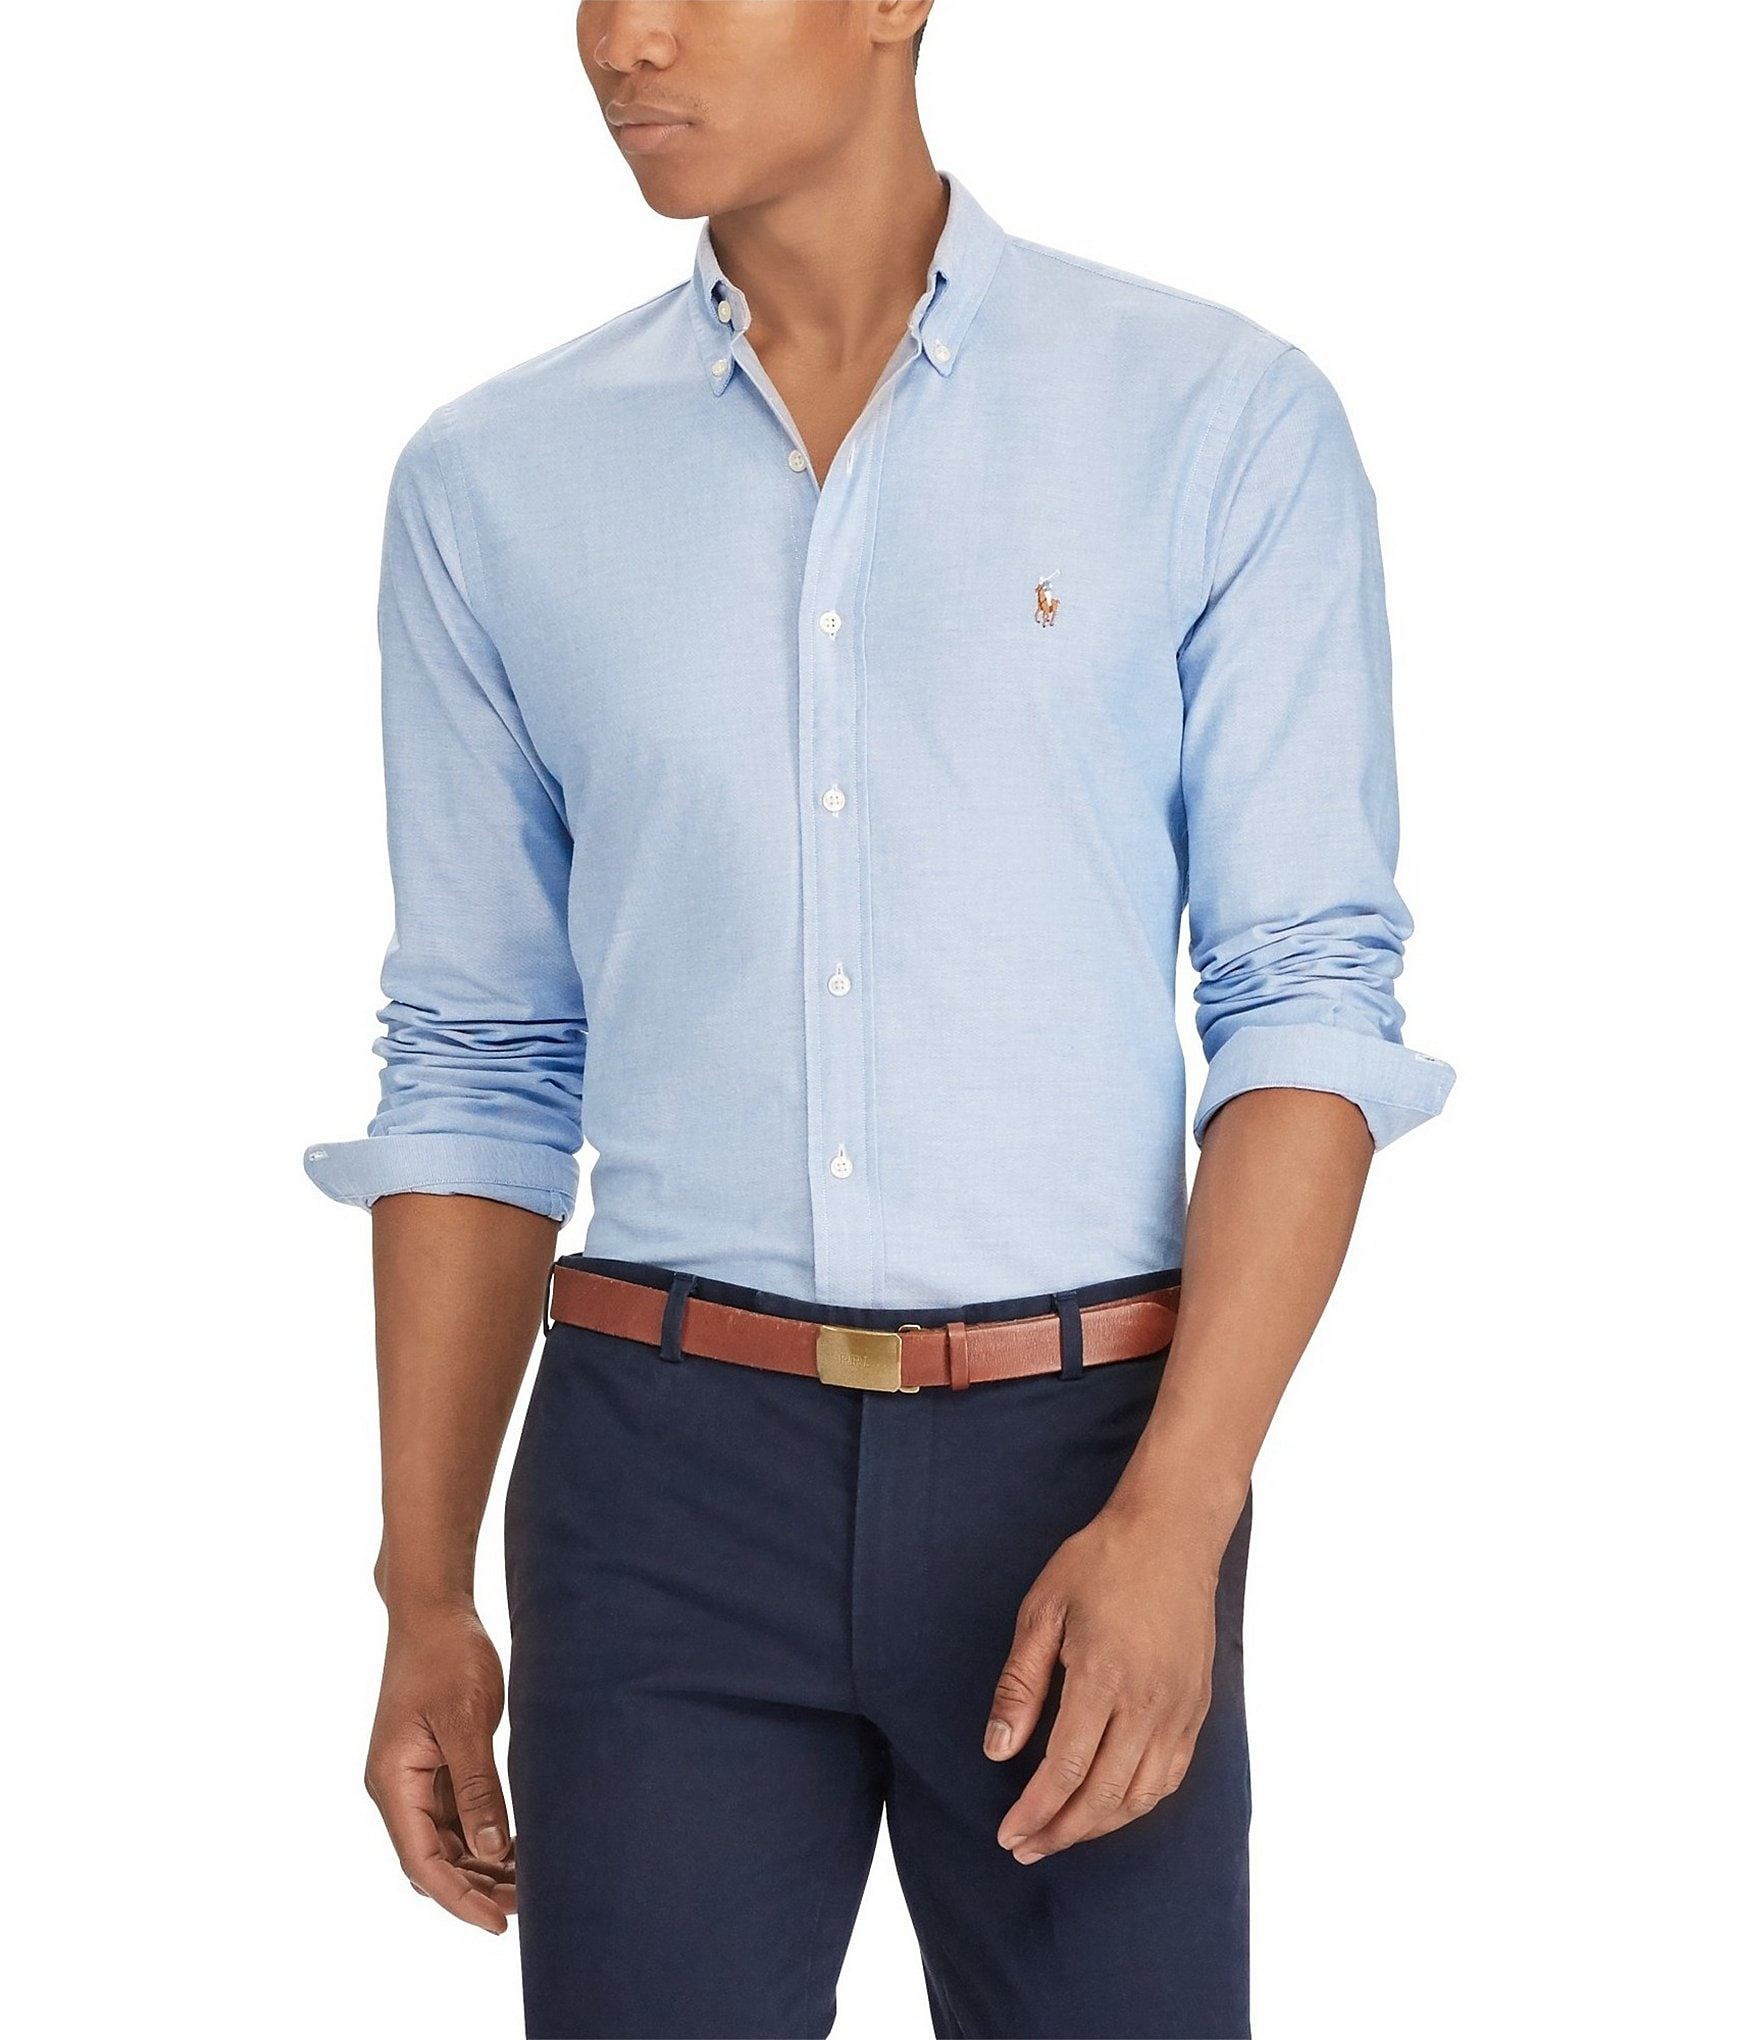 Polo ralph lauren slim fit solid stretch oxford long for Men oxford slim fit long sleeve shirt